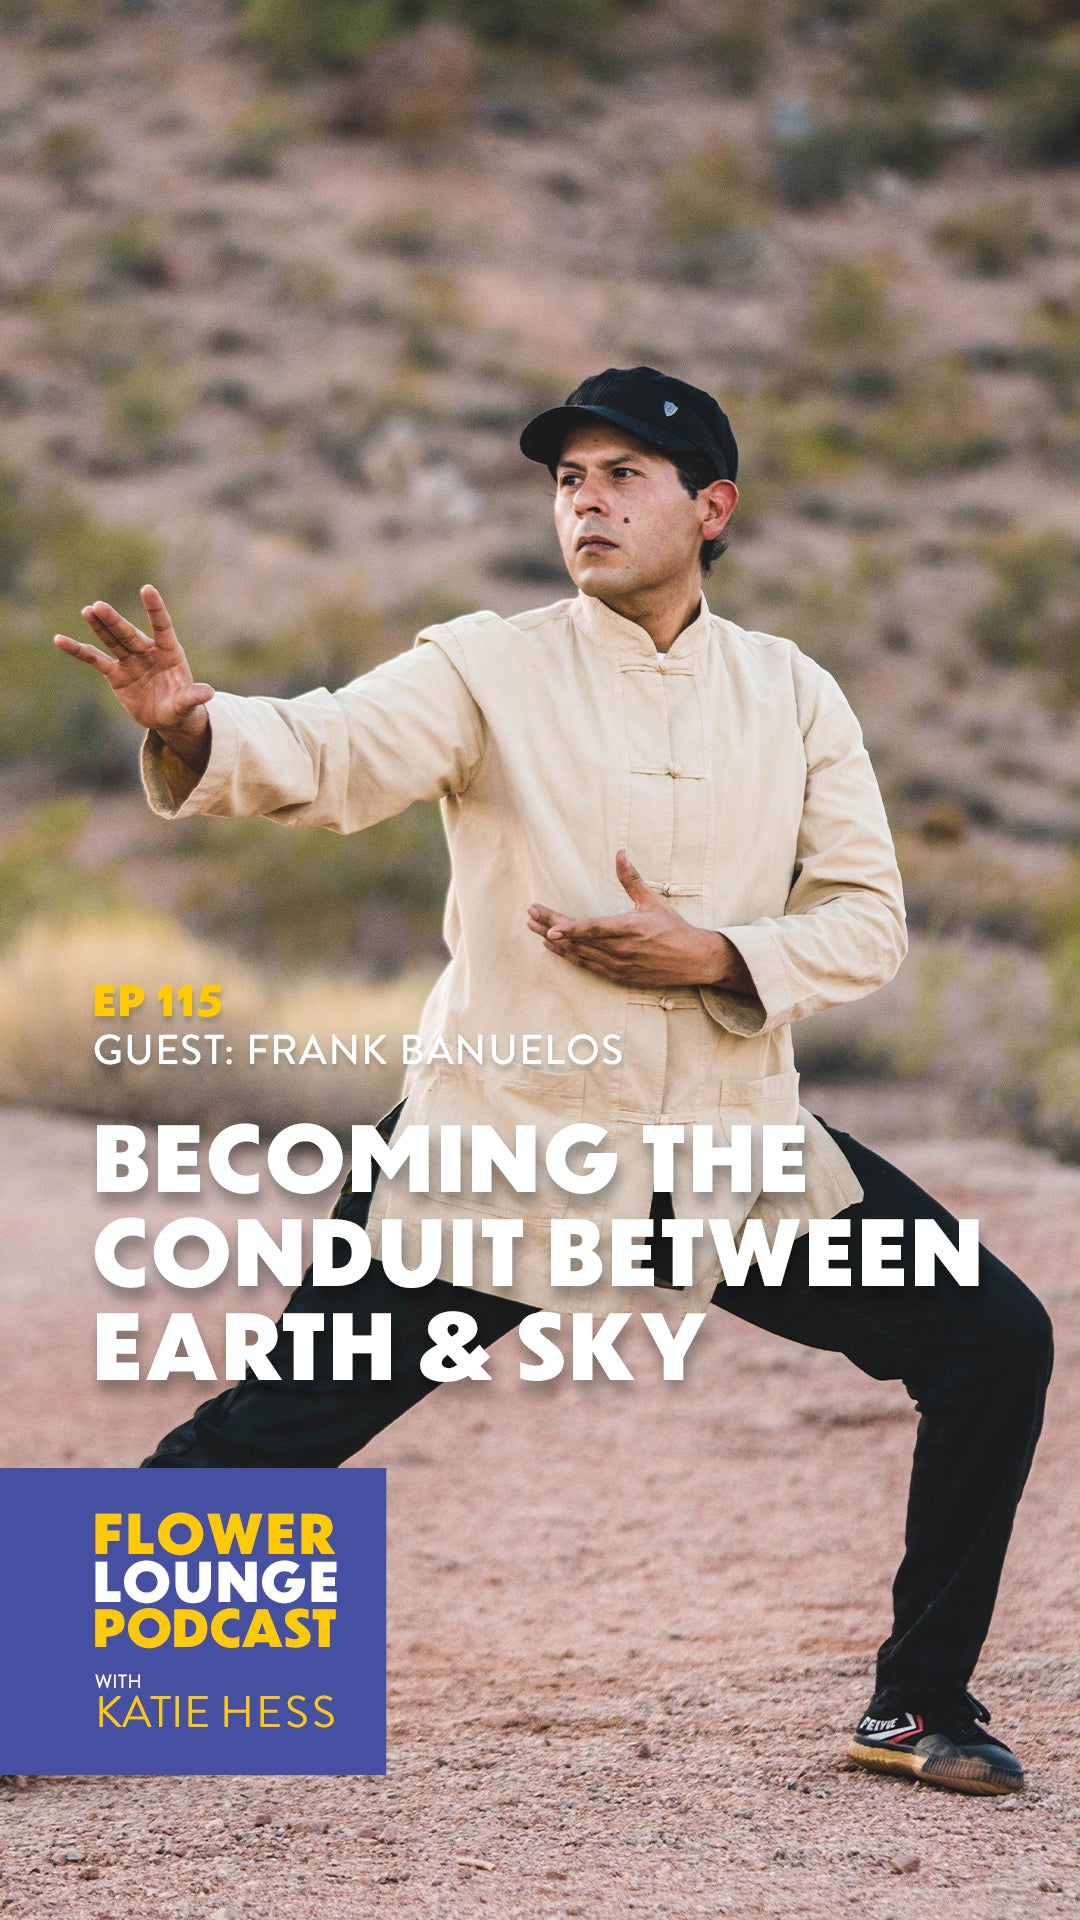 Becoming the Conduit Between Earth & Sky with Frank Banuelos on the Flowerlounge Podcast with Katie Hess